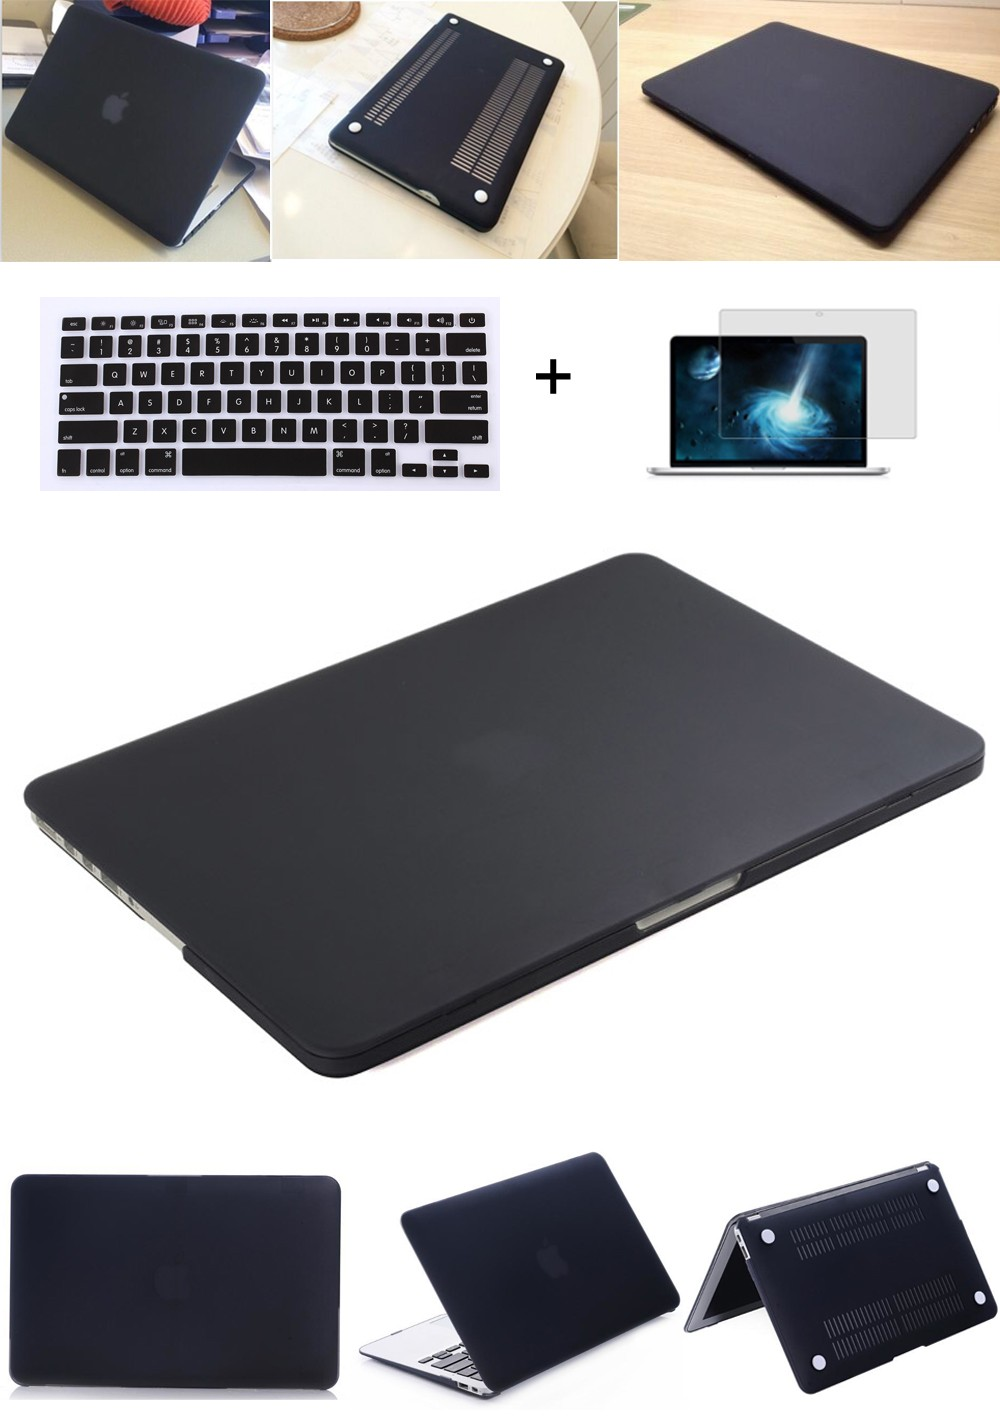 Laptop Case For Apple Macbook Mac book Air Pro Retina New Touch Bar 11 12 13 15 inch Matte Hard Laptop Cover Case 13.3 Bag Shell image